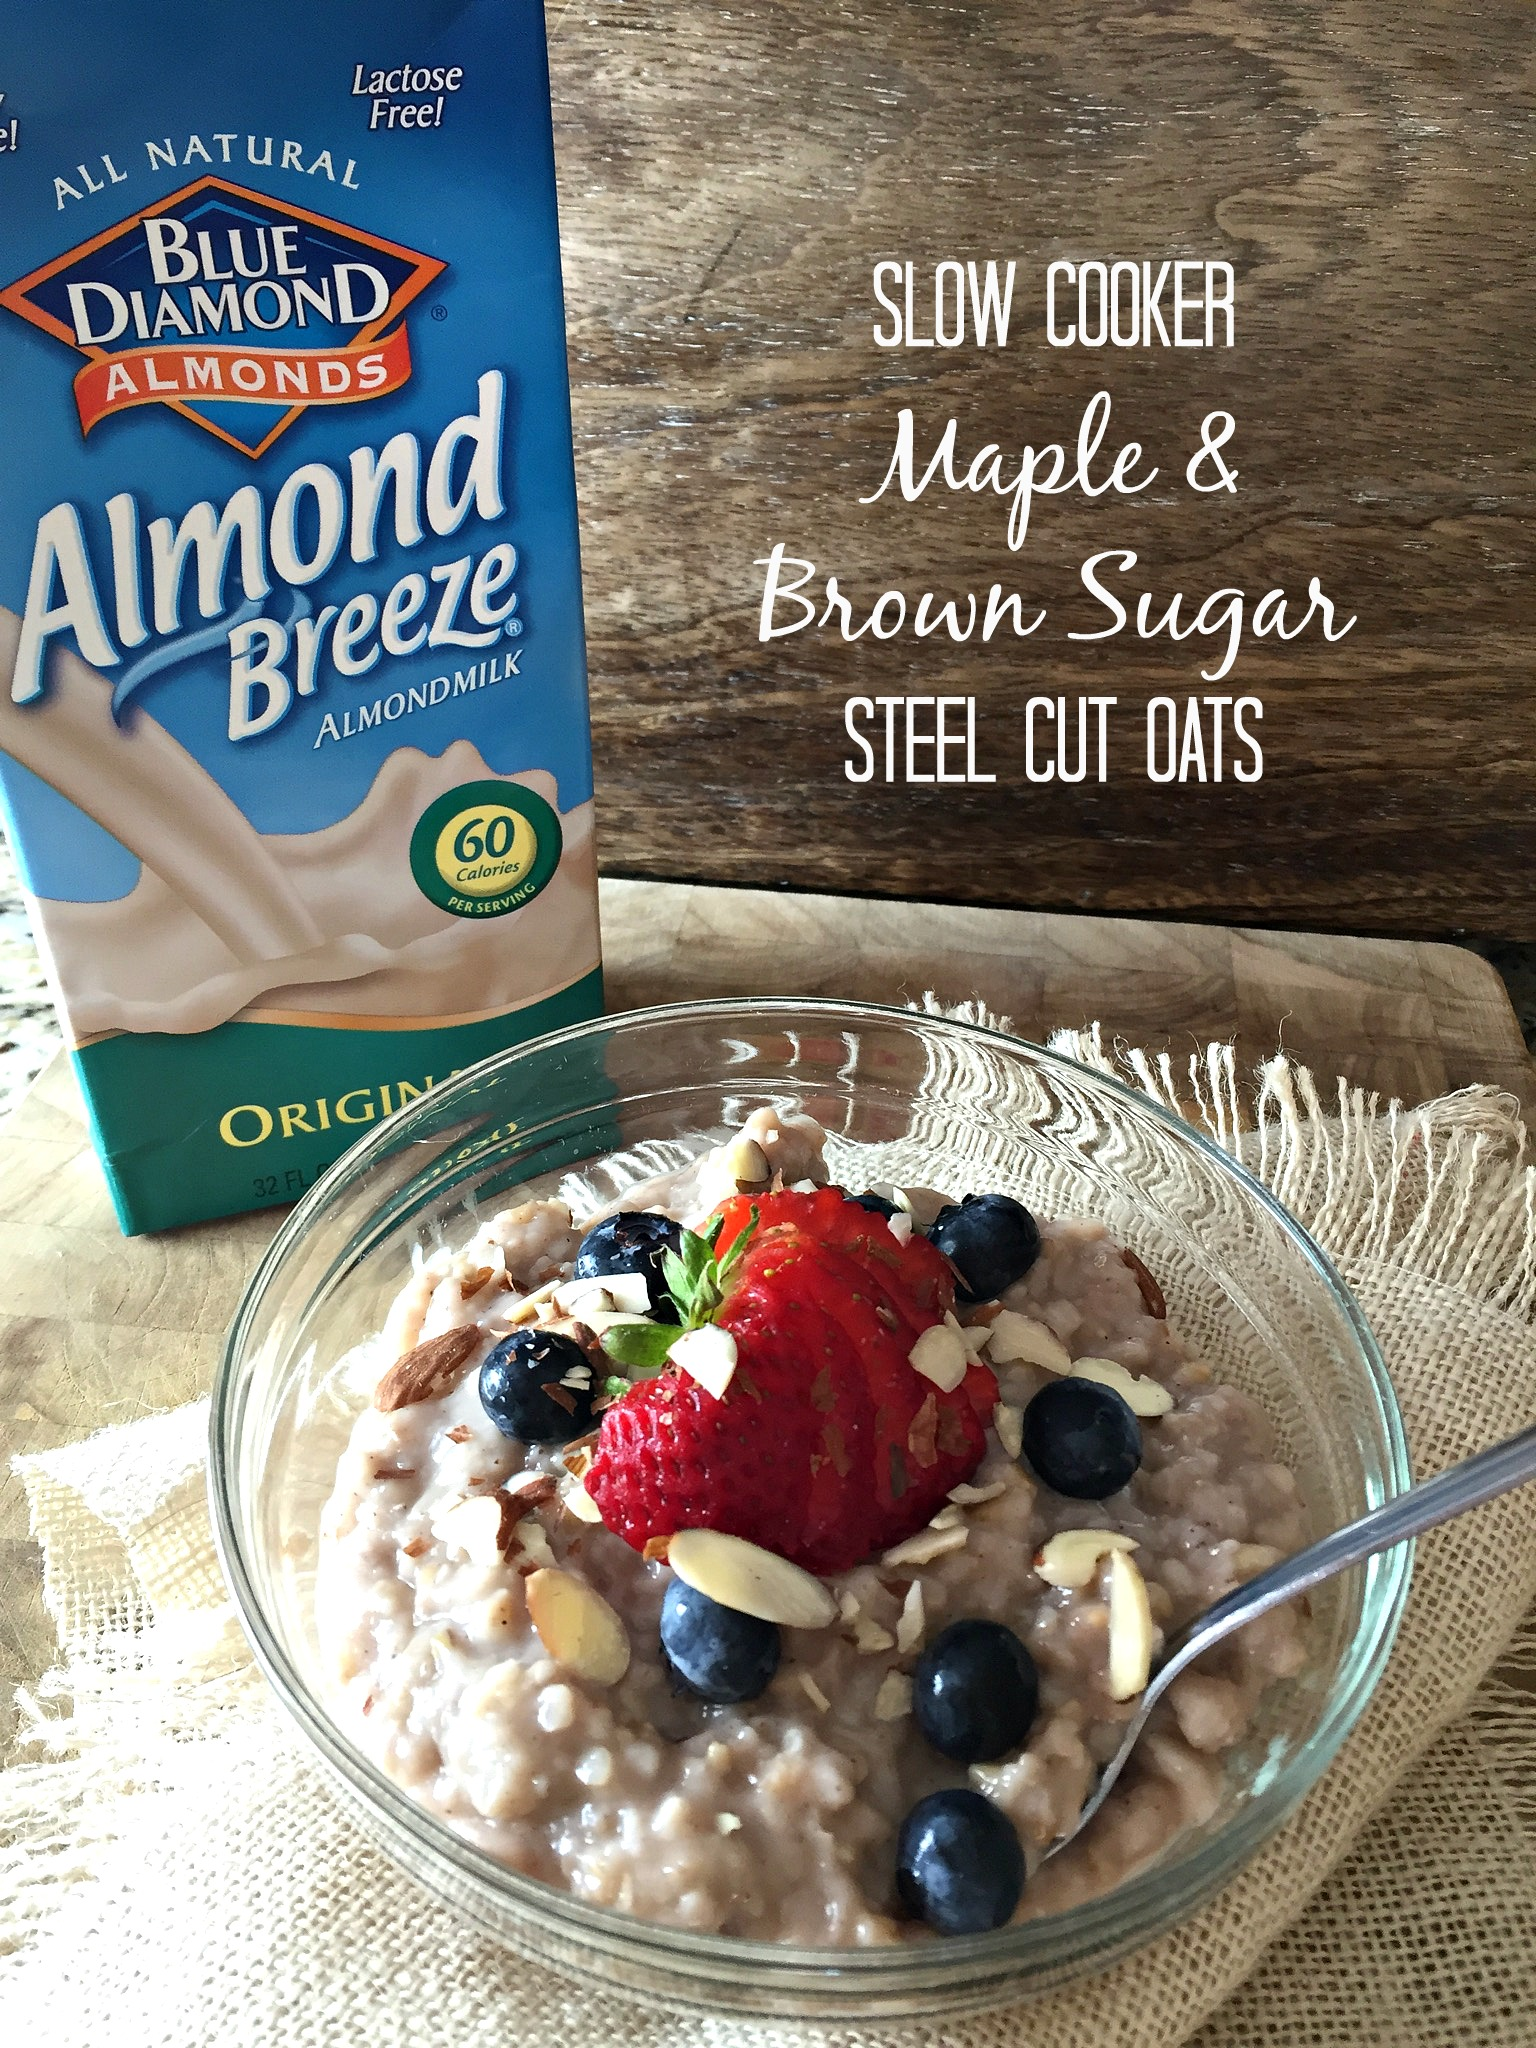 Slow Cooker Maple and Brown Sugar Steel Cut Oats